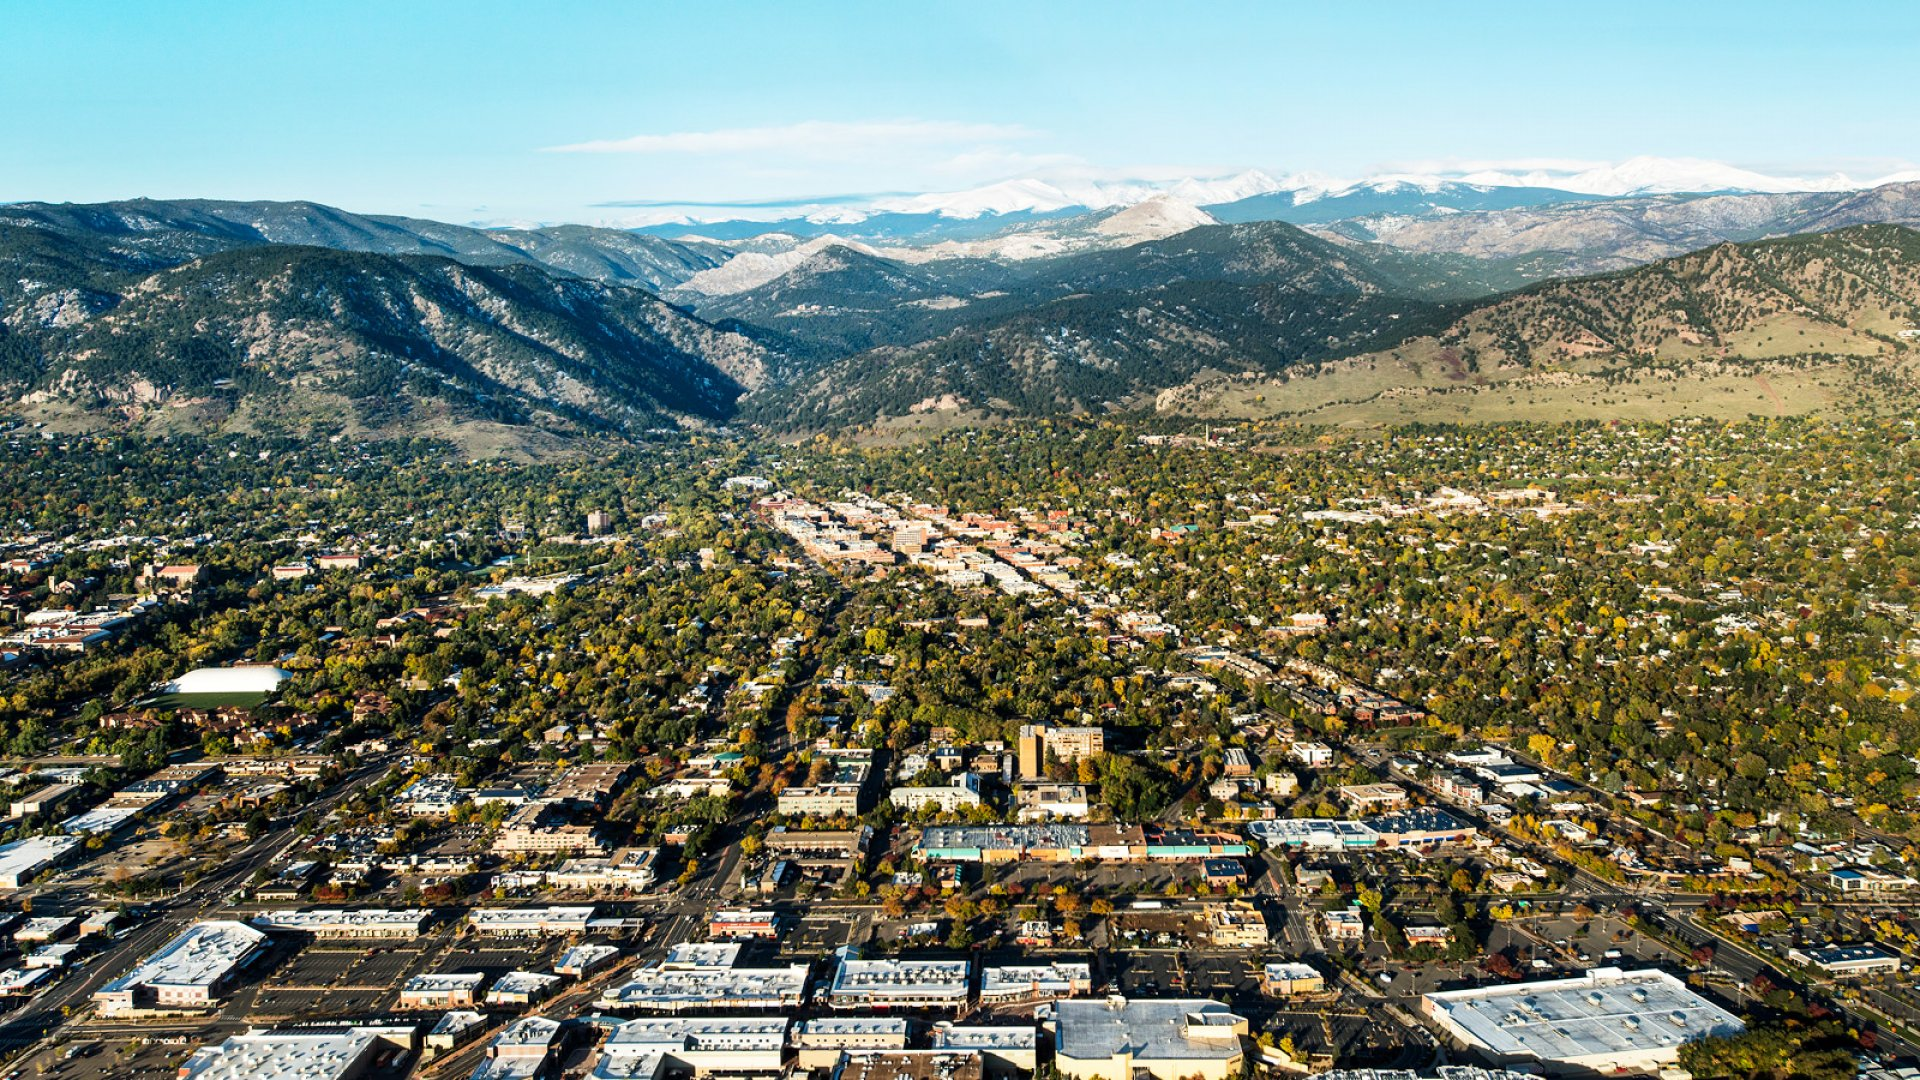 Boulder, per capita, has more high-tech start-ups than any city in the country.